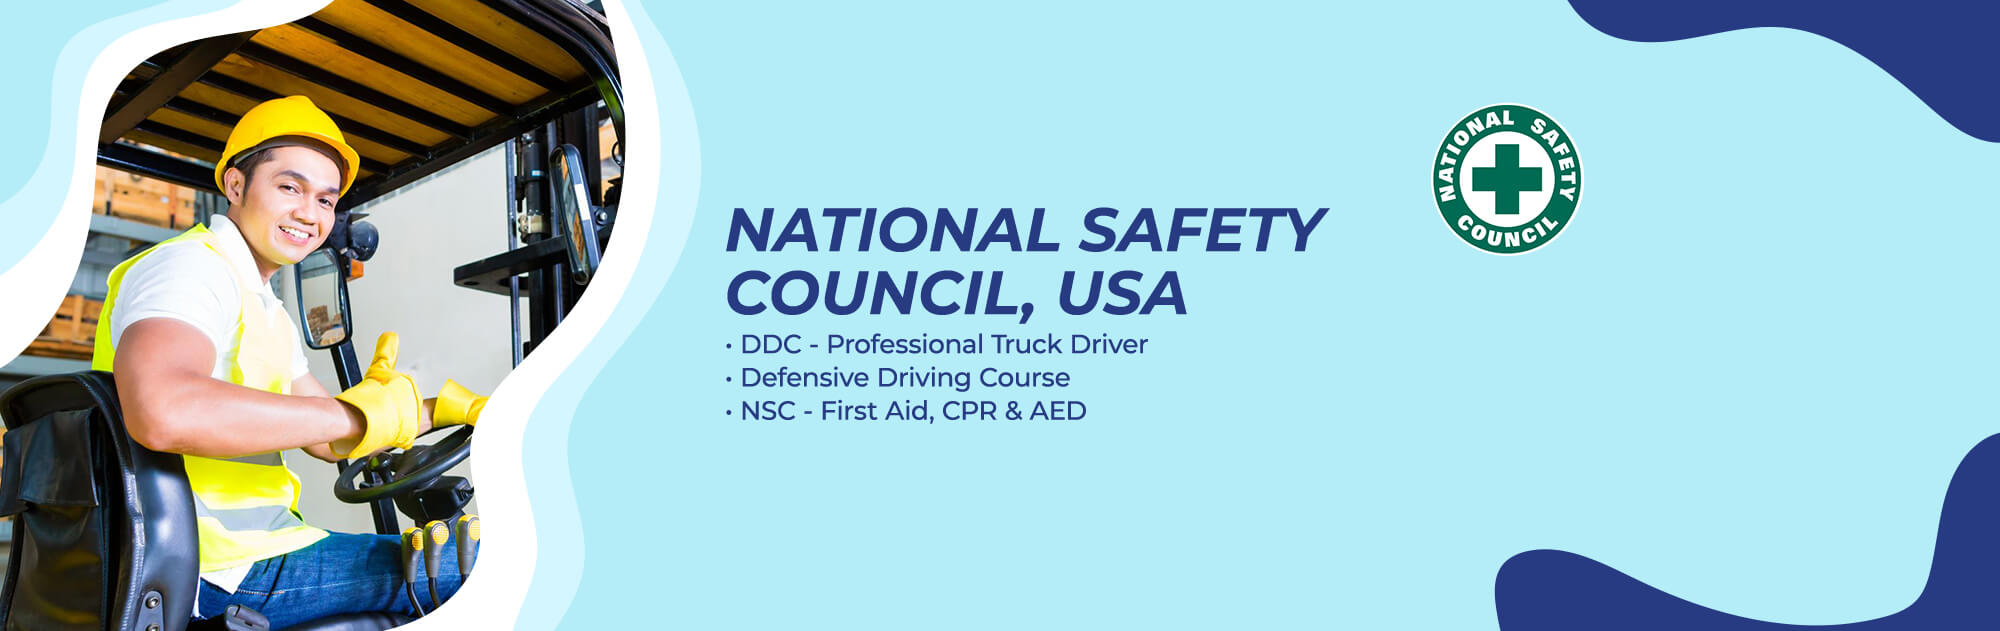 National Safely Council, USA - DDC Professional Truck Driver, Defensive Driving Course, NSC First Aid, CPR and AED